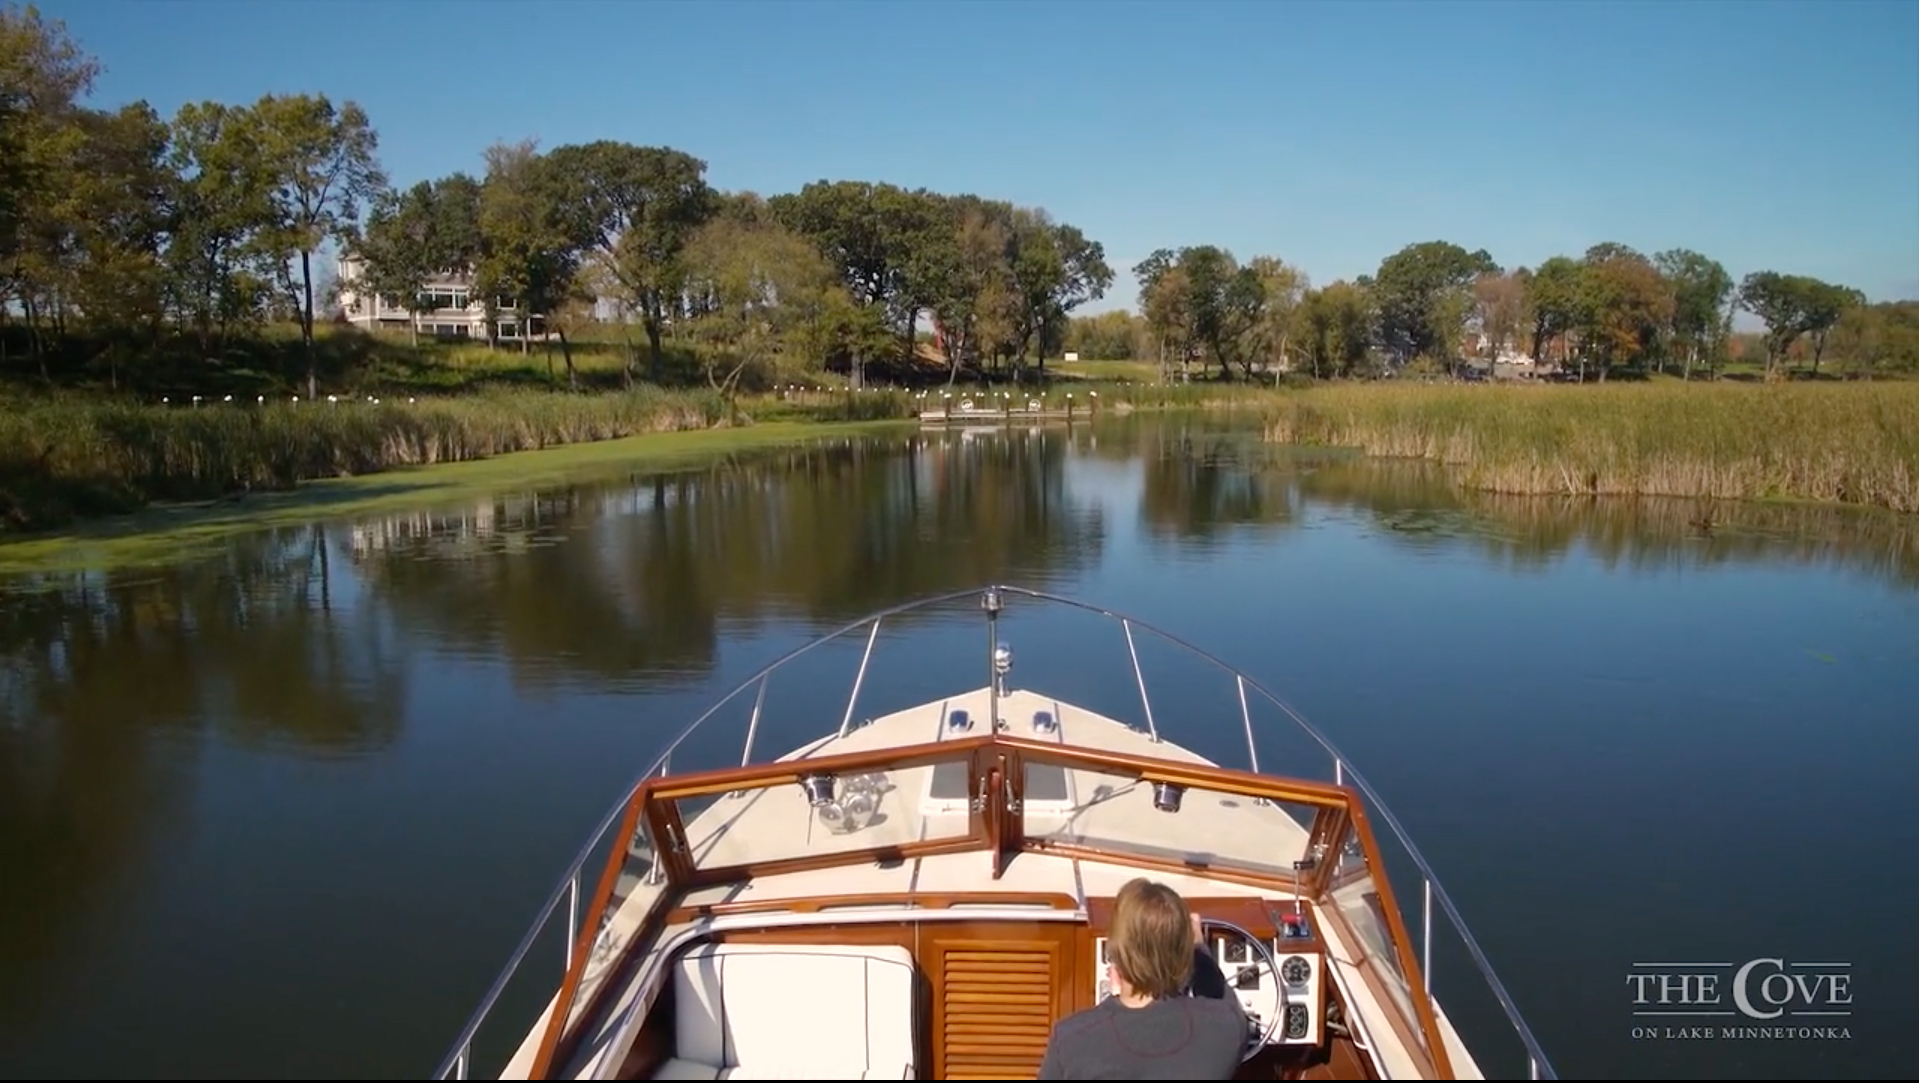 Video on The Cove on Lake Minnetonka